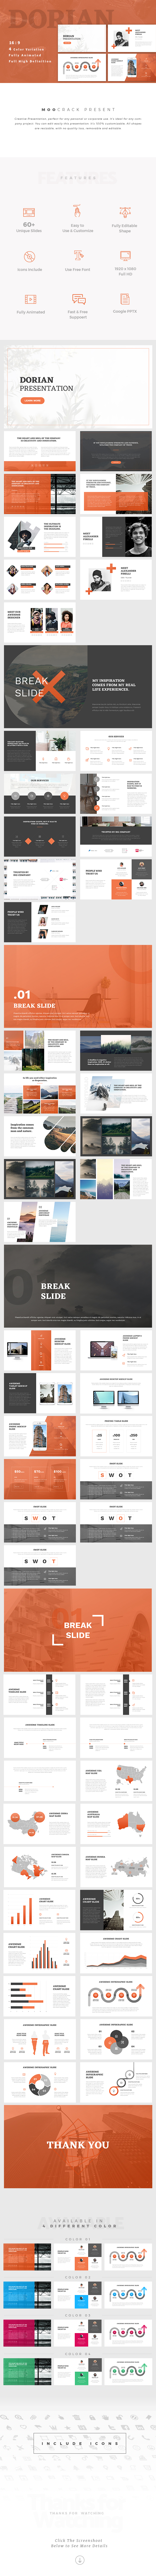 GraphicRiver Dorian Creative GoogleSlides Template 21095567